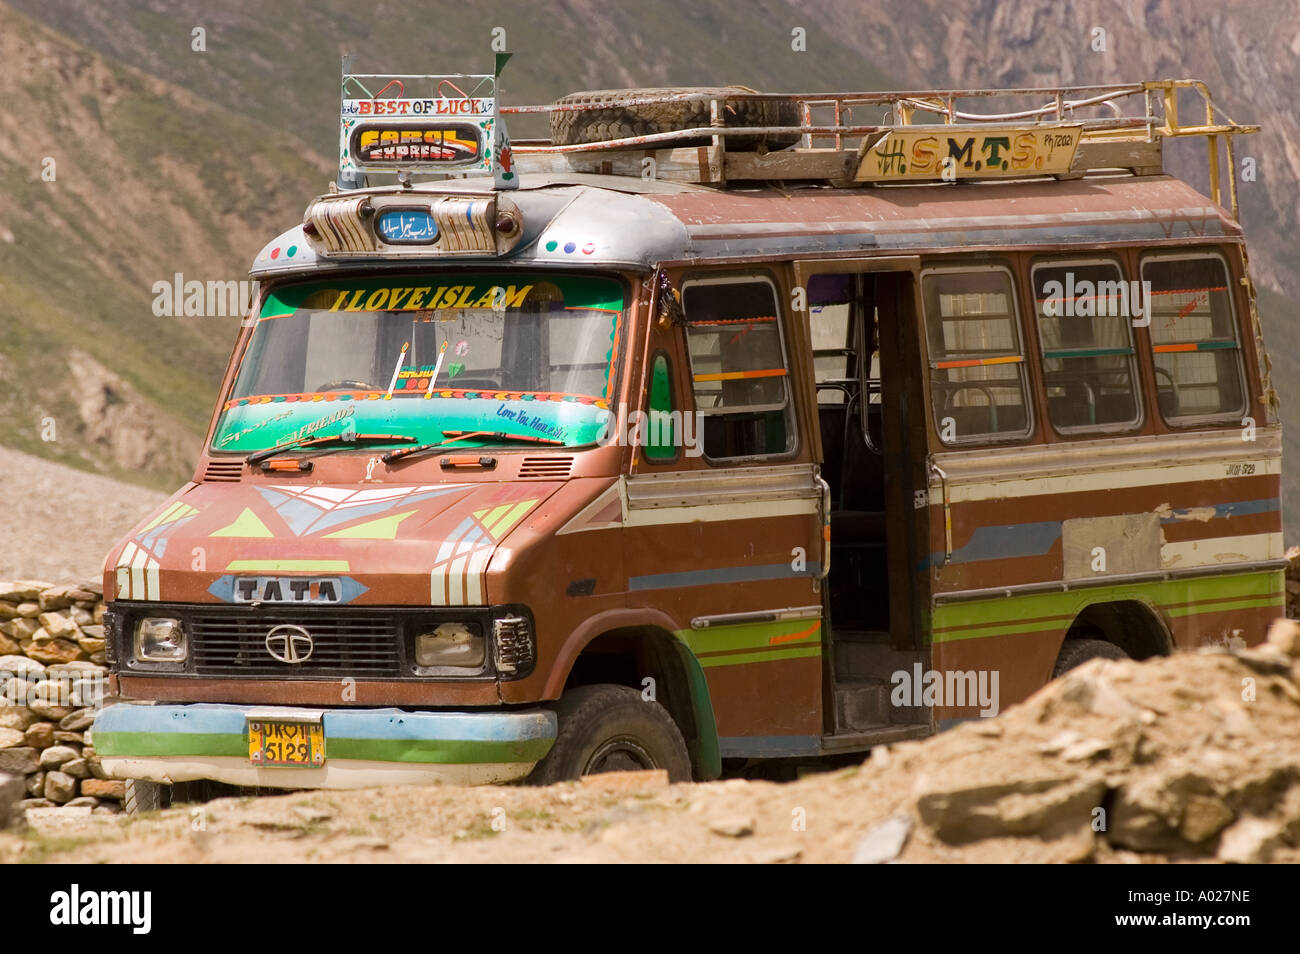 I love Islam sign on Tata indian mini bus Kargil district